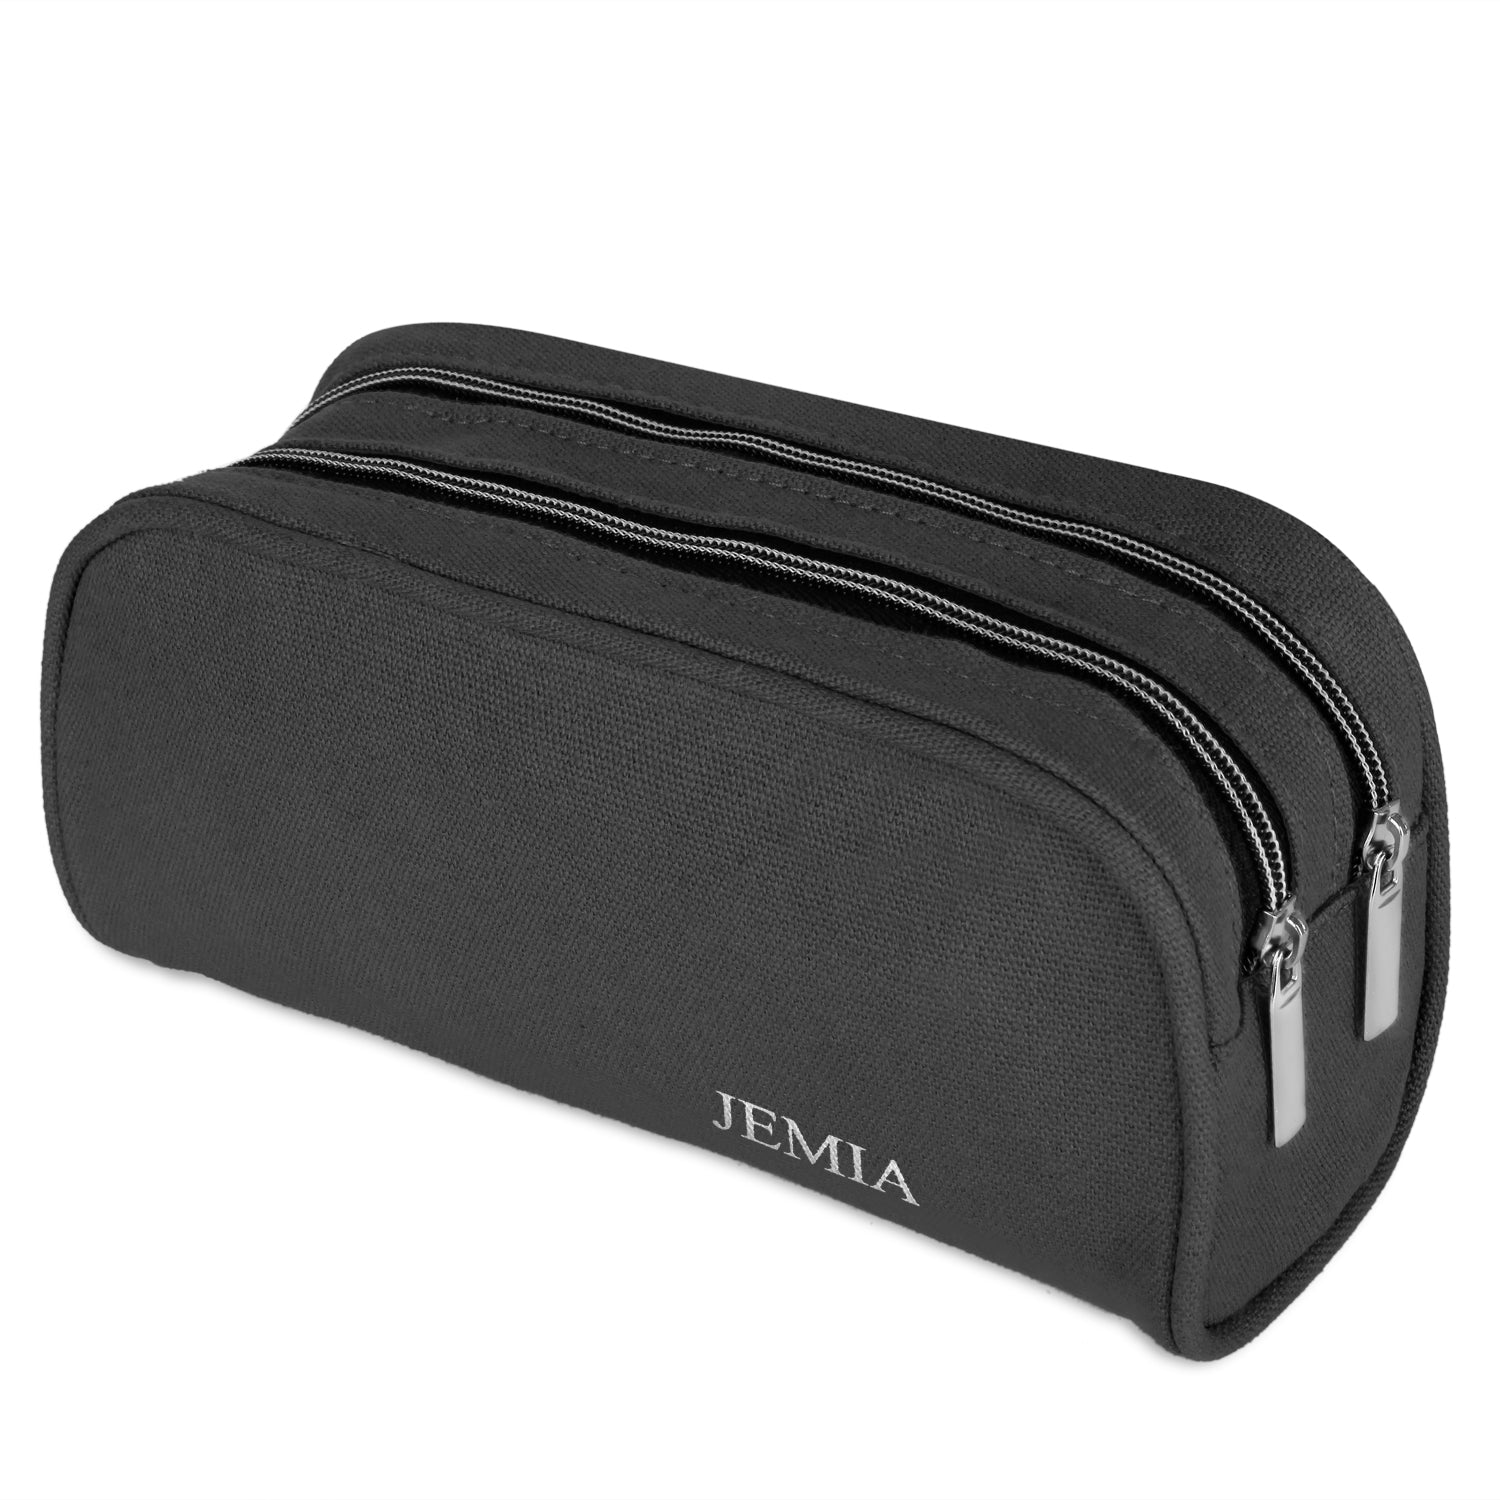 Dual Compartments Pencil Case with Mesh Pockets (Plain, Canvas) - JEMIA